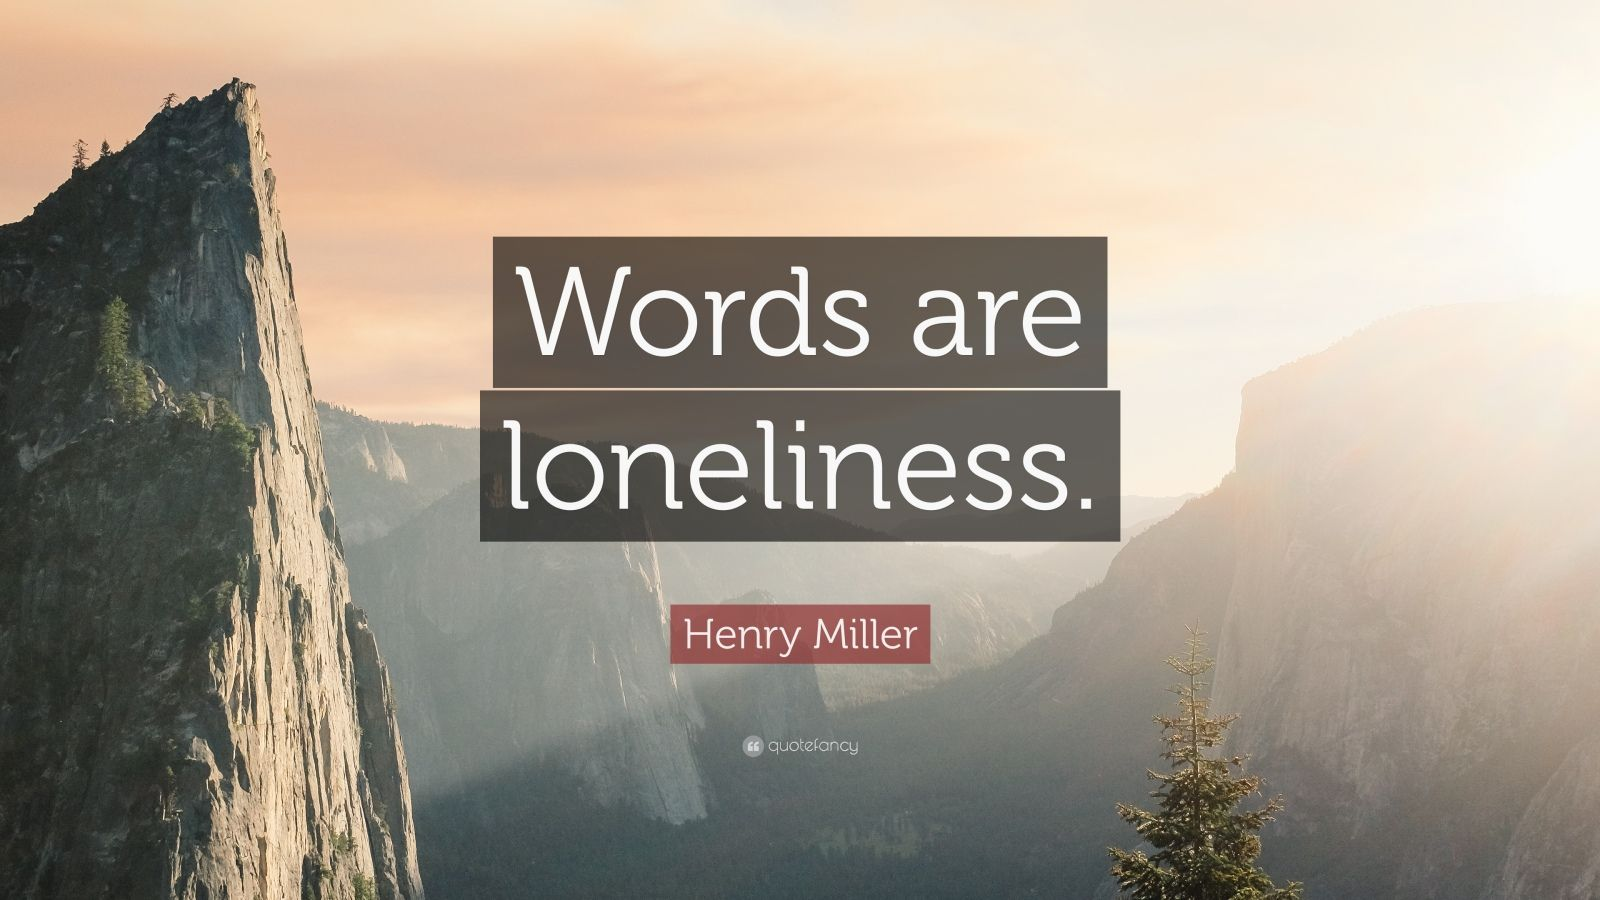 Loneliness Wallpapers - WallpaperSafari |Loneliness Wallpapers With Quotes